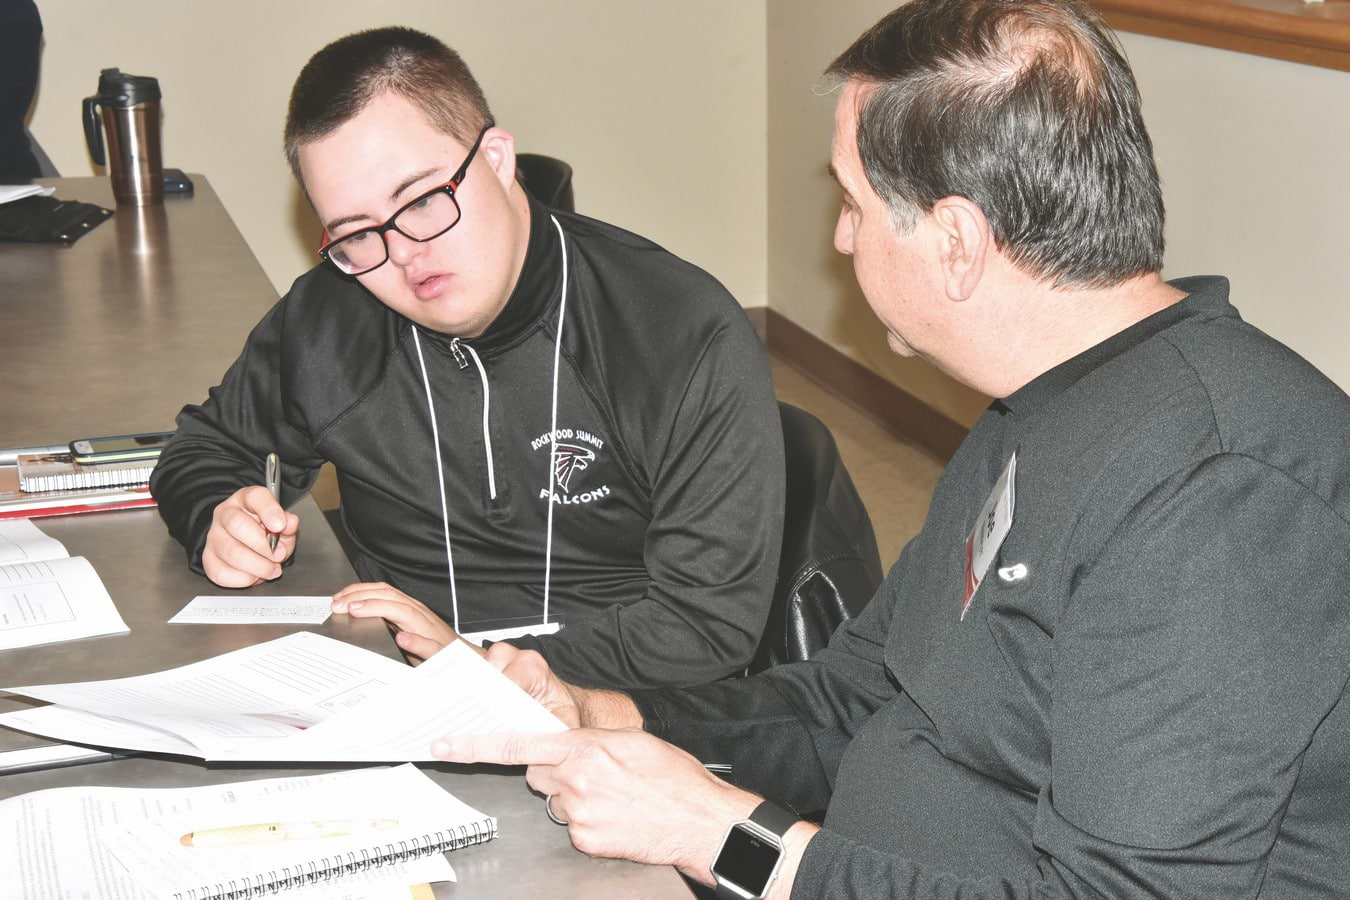 A mentor shows an athlete-leader notes during an Athlete Leadership class